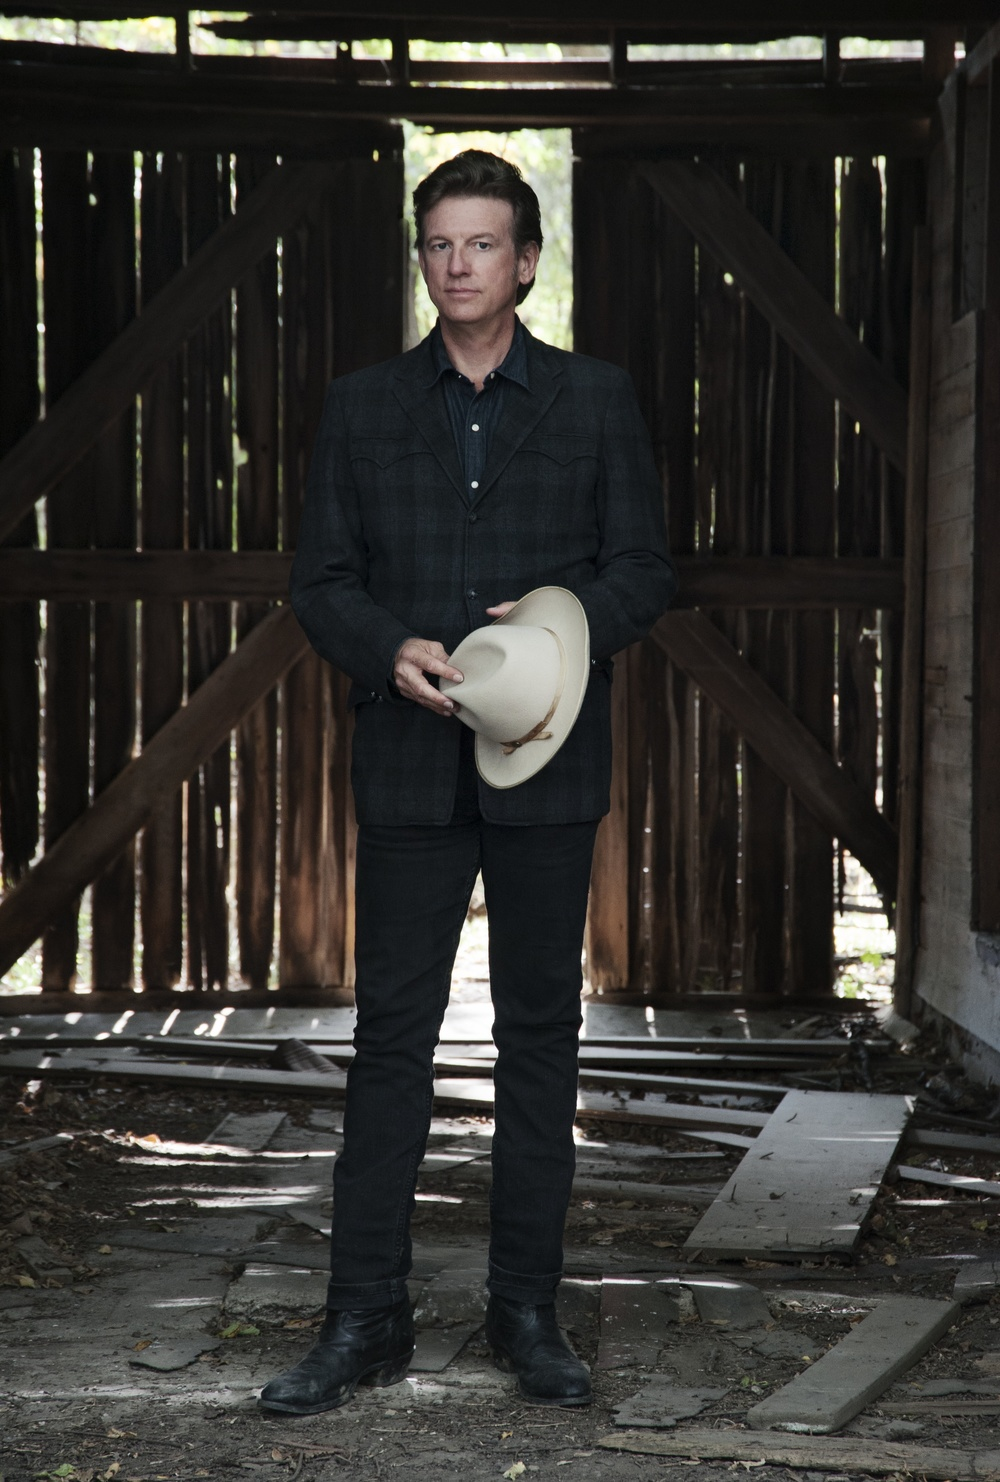 Chuck Mead Press Photo 2014 Hi-Res.jpg